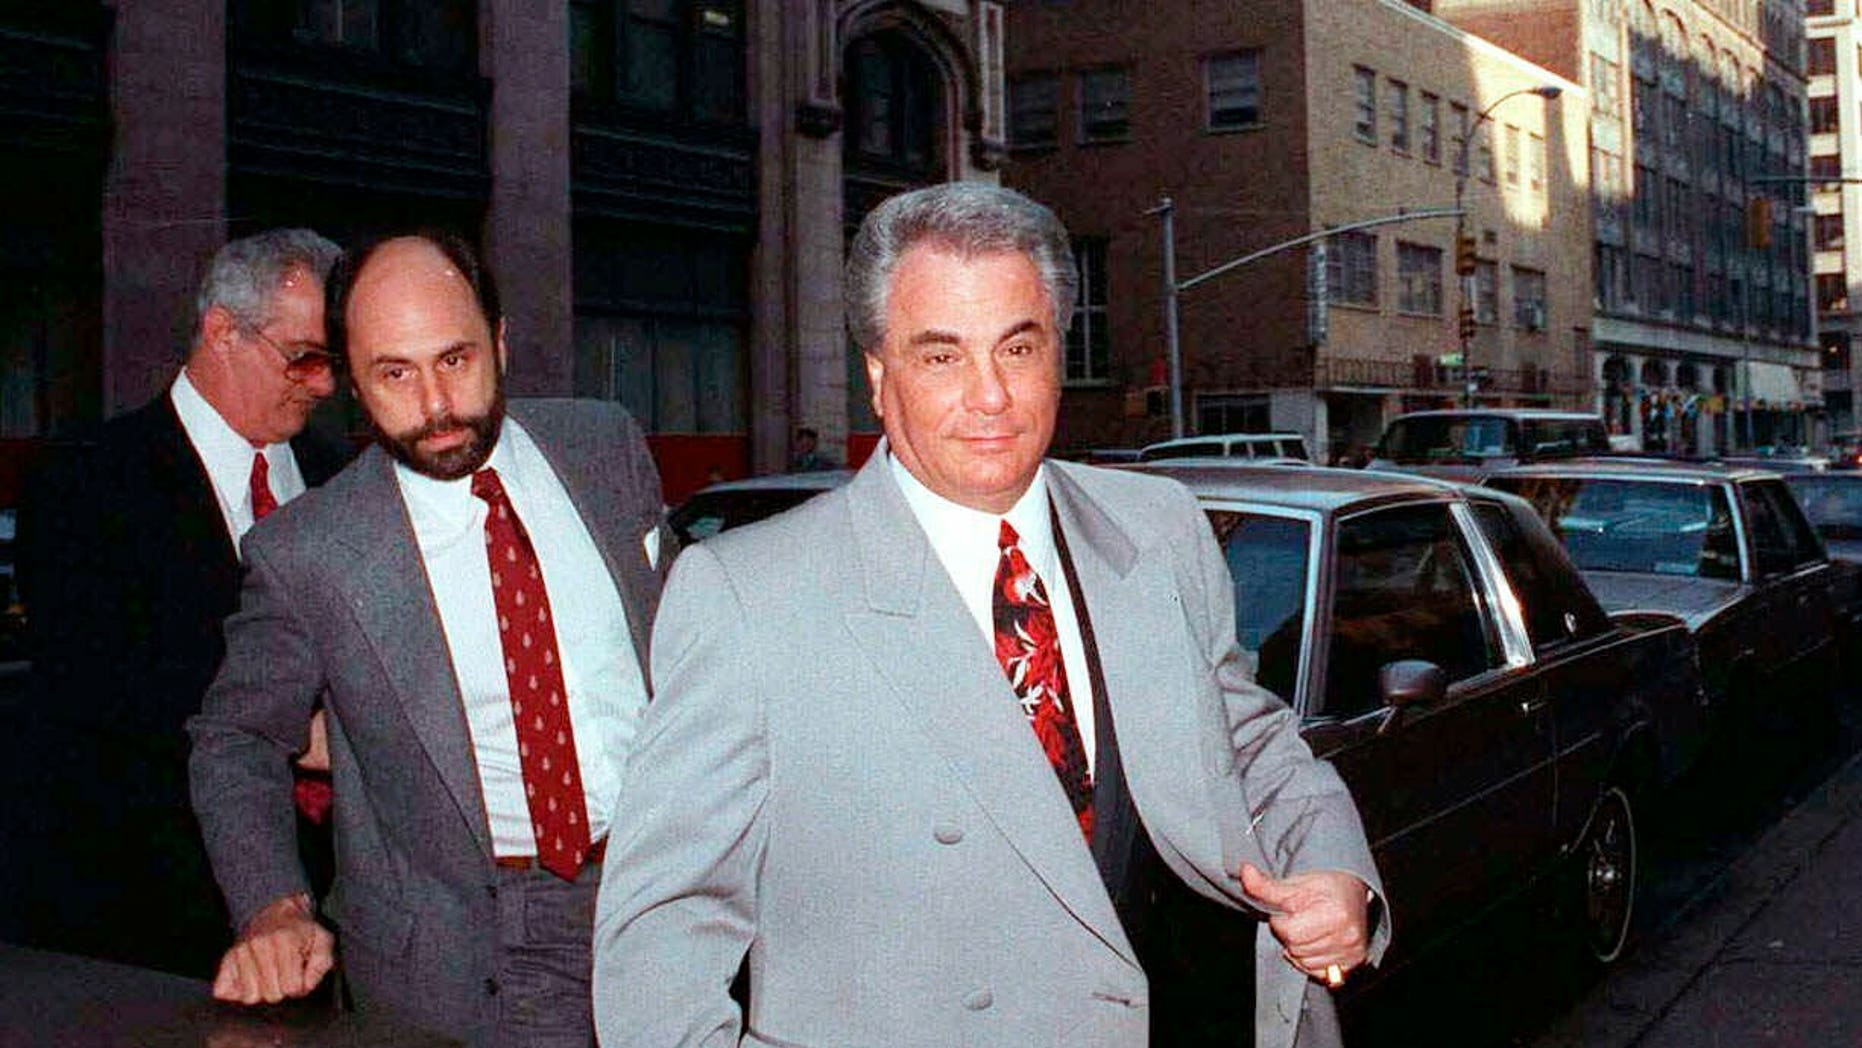 "FILE - In this Feb. 9, 1990 file photo, John Gotti, right, arrives at court in New York. The Gambino family was once among the most powerful criminal organizations in the U.S., but federal prosecutions in the 1980s and 1990s sent Gotti and other top leaders to prison, diminishing its reach. The last Mafia boss to be shot to death in New York City was Gambino don Paul Castellano, assassinated outside a Manhattan steakhouse in 1985 at the direction of Gotti, who then took over the organization. On Wednesday, March 13, 2019, Francesco ""Franky Boy"" Cali, the reputed boss of New York's Gambino crime family was gunned down outside his home, dying a virtual unknown compared with his swaggering 1980s-era predecessor, the custom-tailored tabloid regular Gotti. (AP Photo/David Cantor, File)"